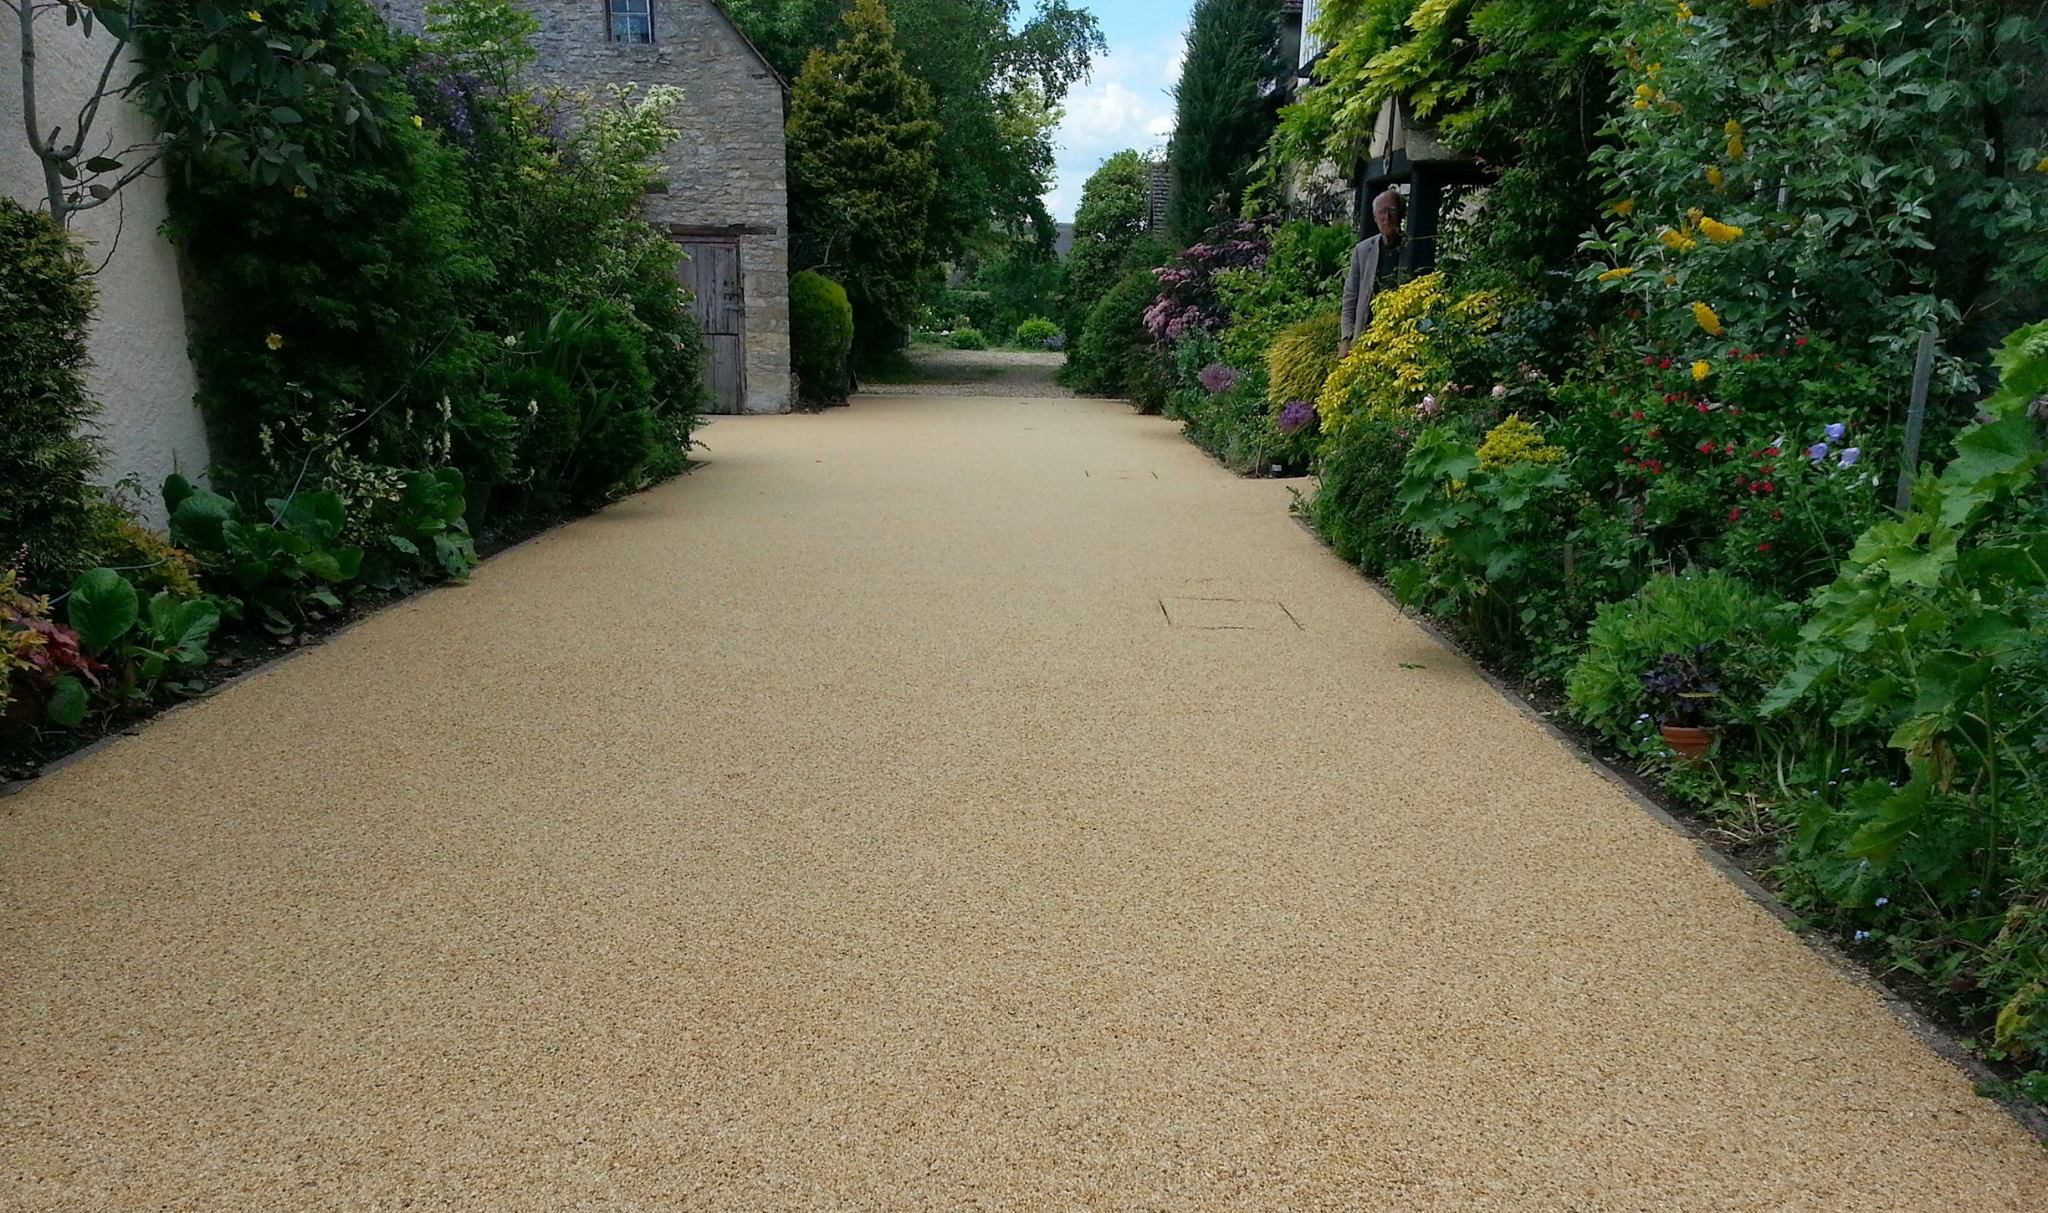 https://smartpavingbristol.co.uk/wp-content/uploads/2021/01/resin-bound-landscaping-e1610879167818.jpg